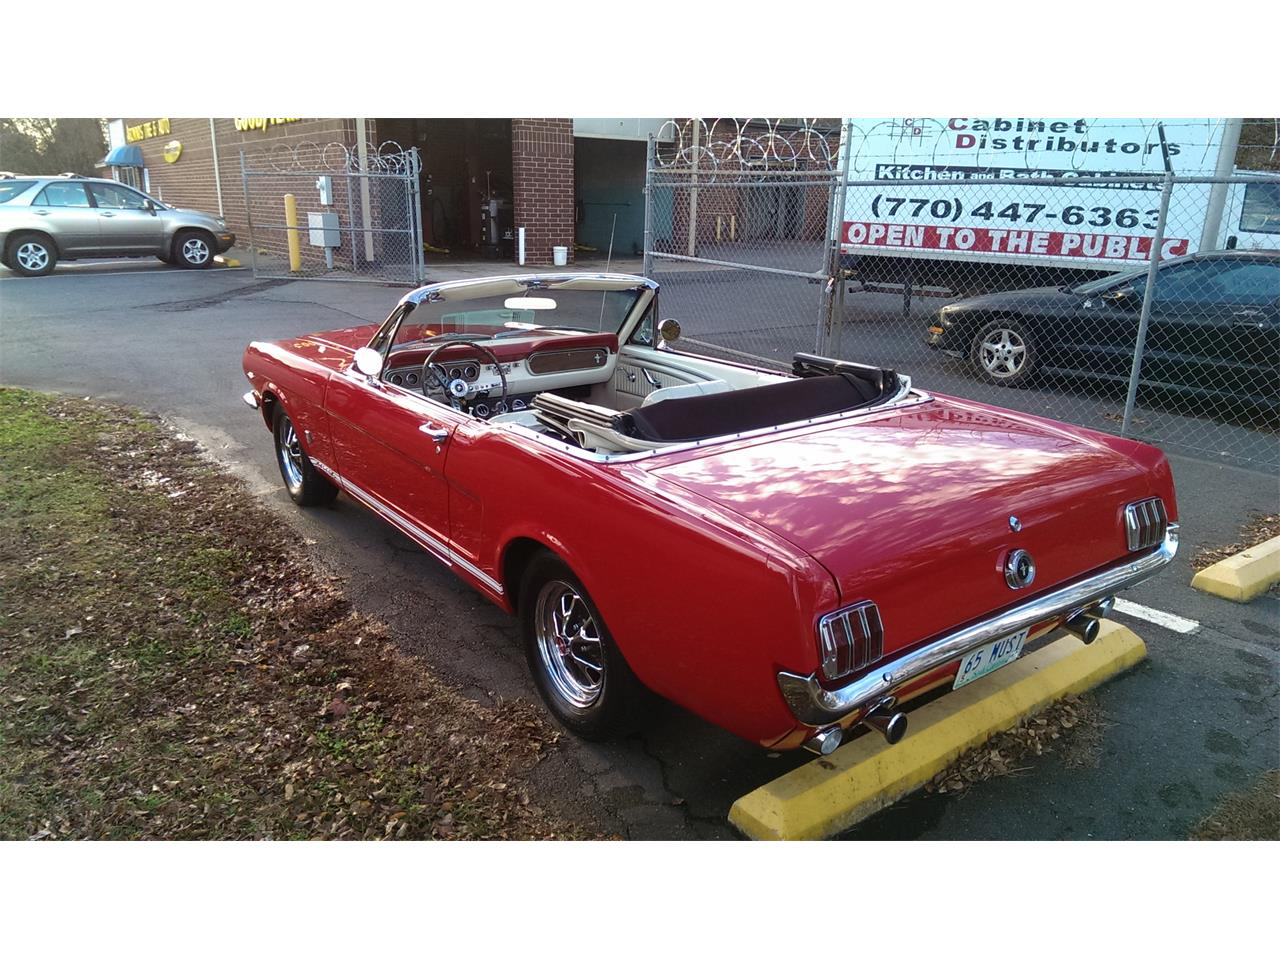 Large Picture of '65 Mustang located in Charlotte North Carolina - $35,000.00 Offered by a Private Seller - D1TR